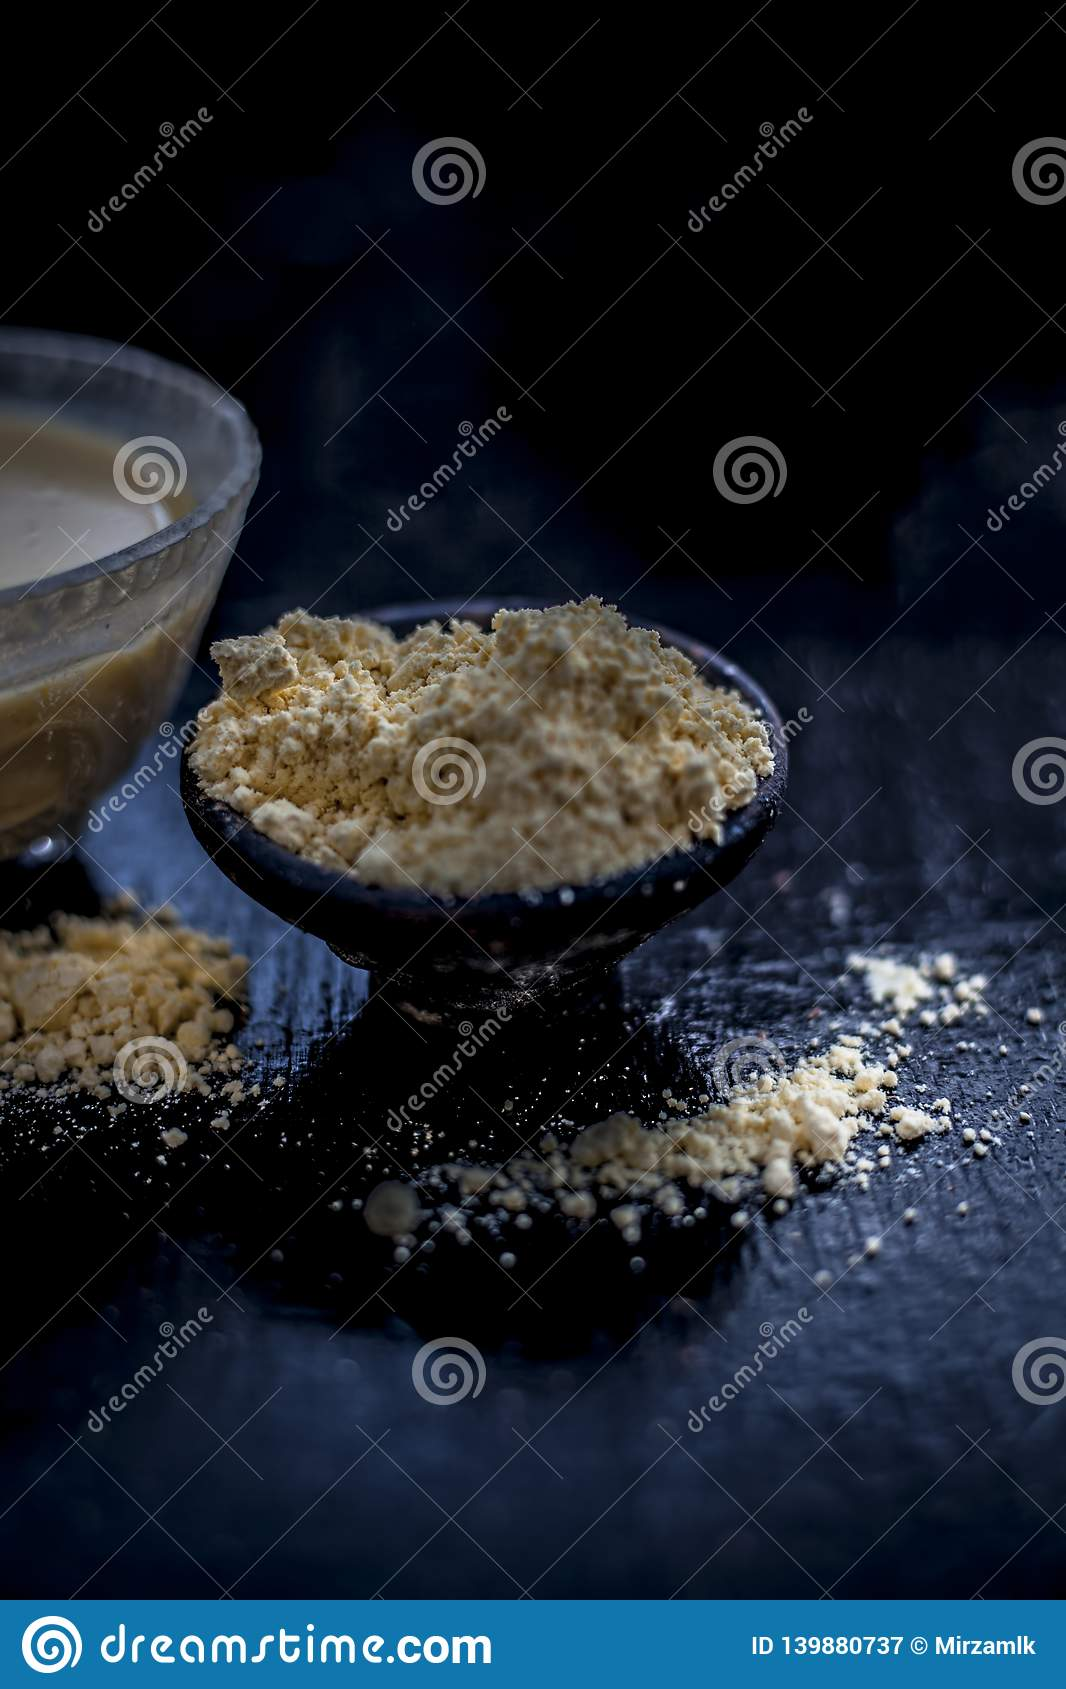 Close up of herbal remedy for hair related problems mainly hair fall on wooden surface i.e. Gram flour with curd and water in a